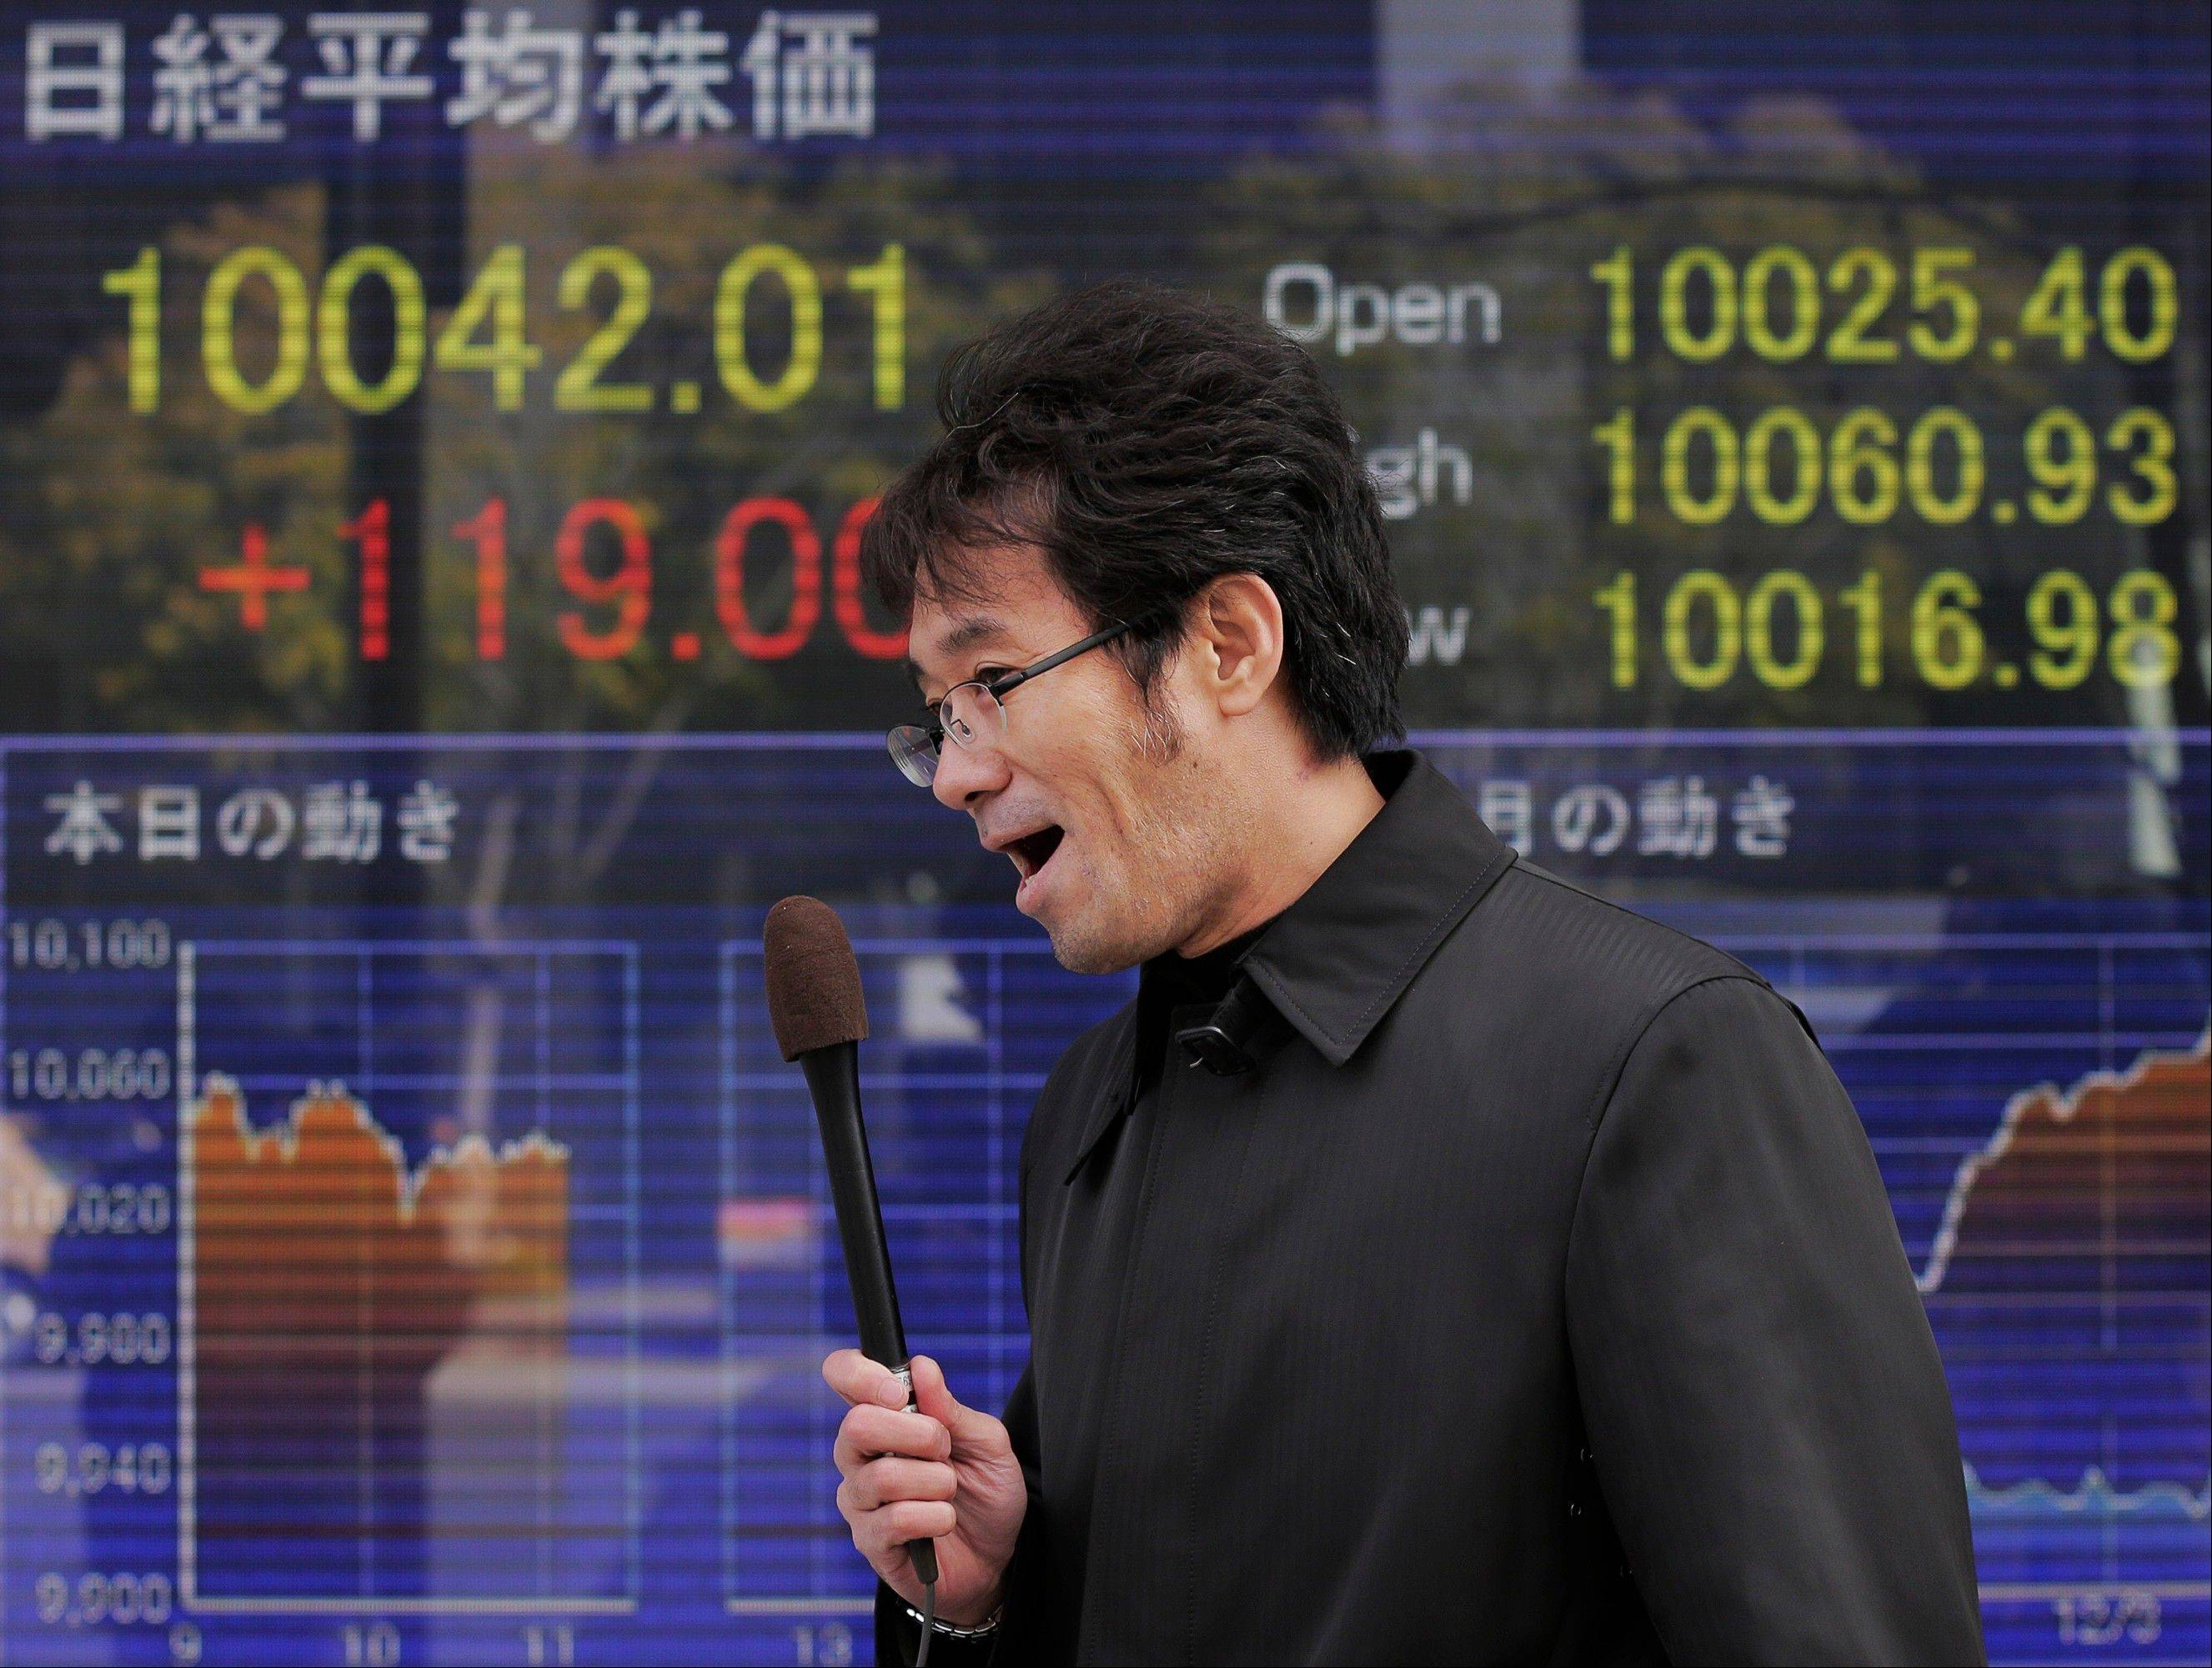 A TV journalist reports in front the electronic stock board of a securities firm showing Japan's Nikkei 225 index that rose 119.00 points to 10,042.01 in Tokyo Wednesday morning.